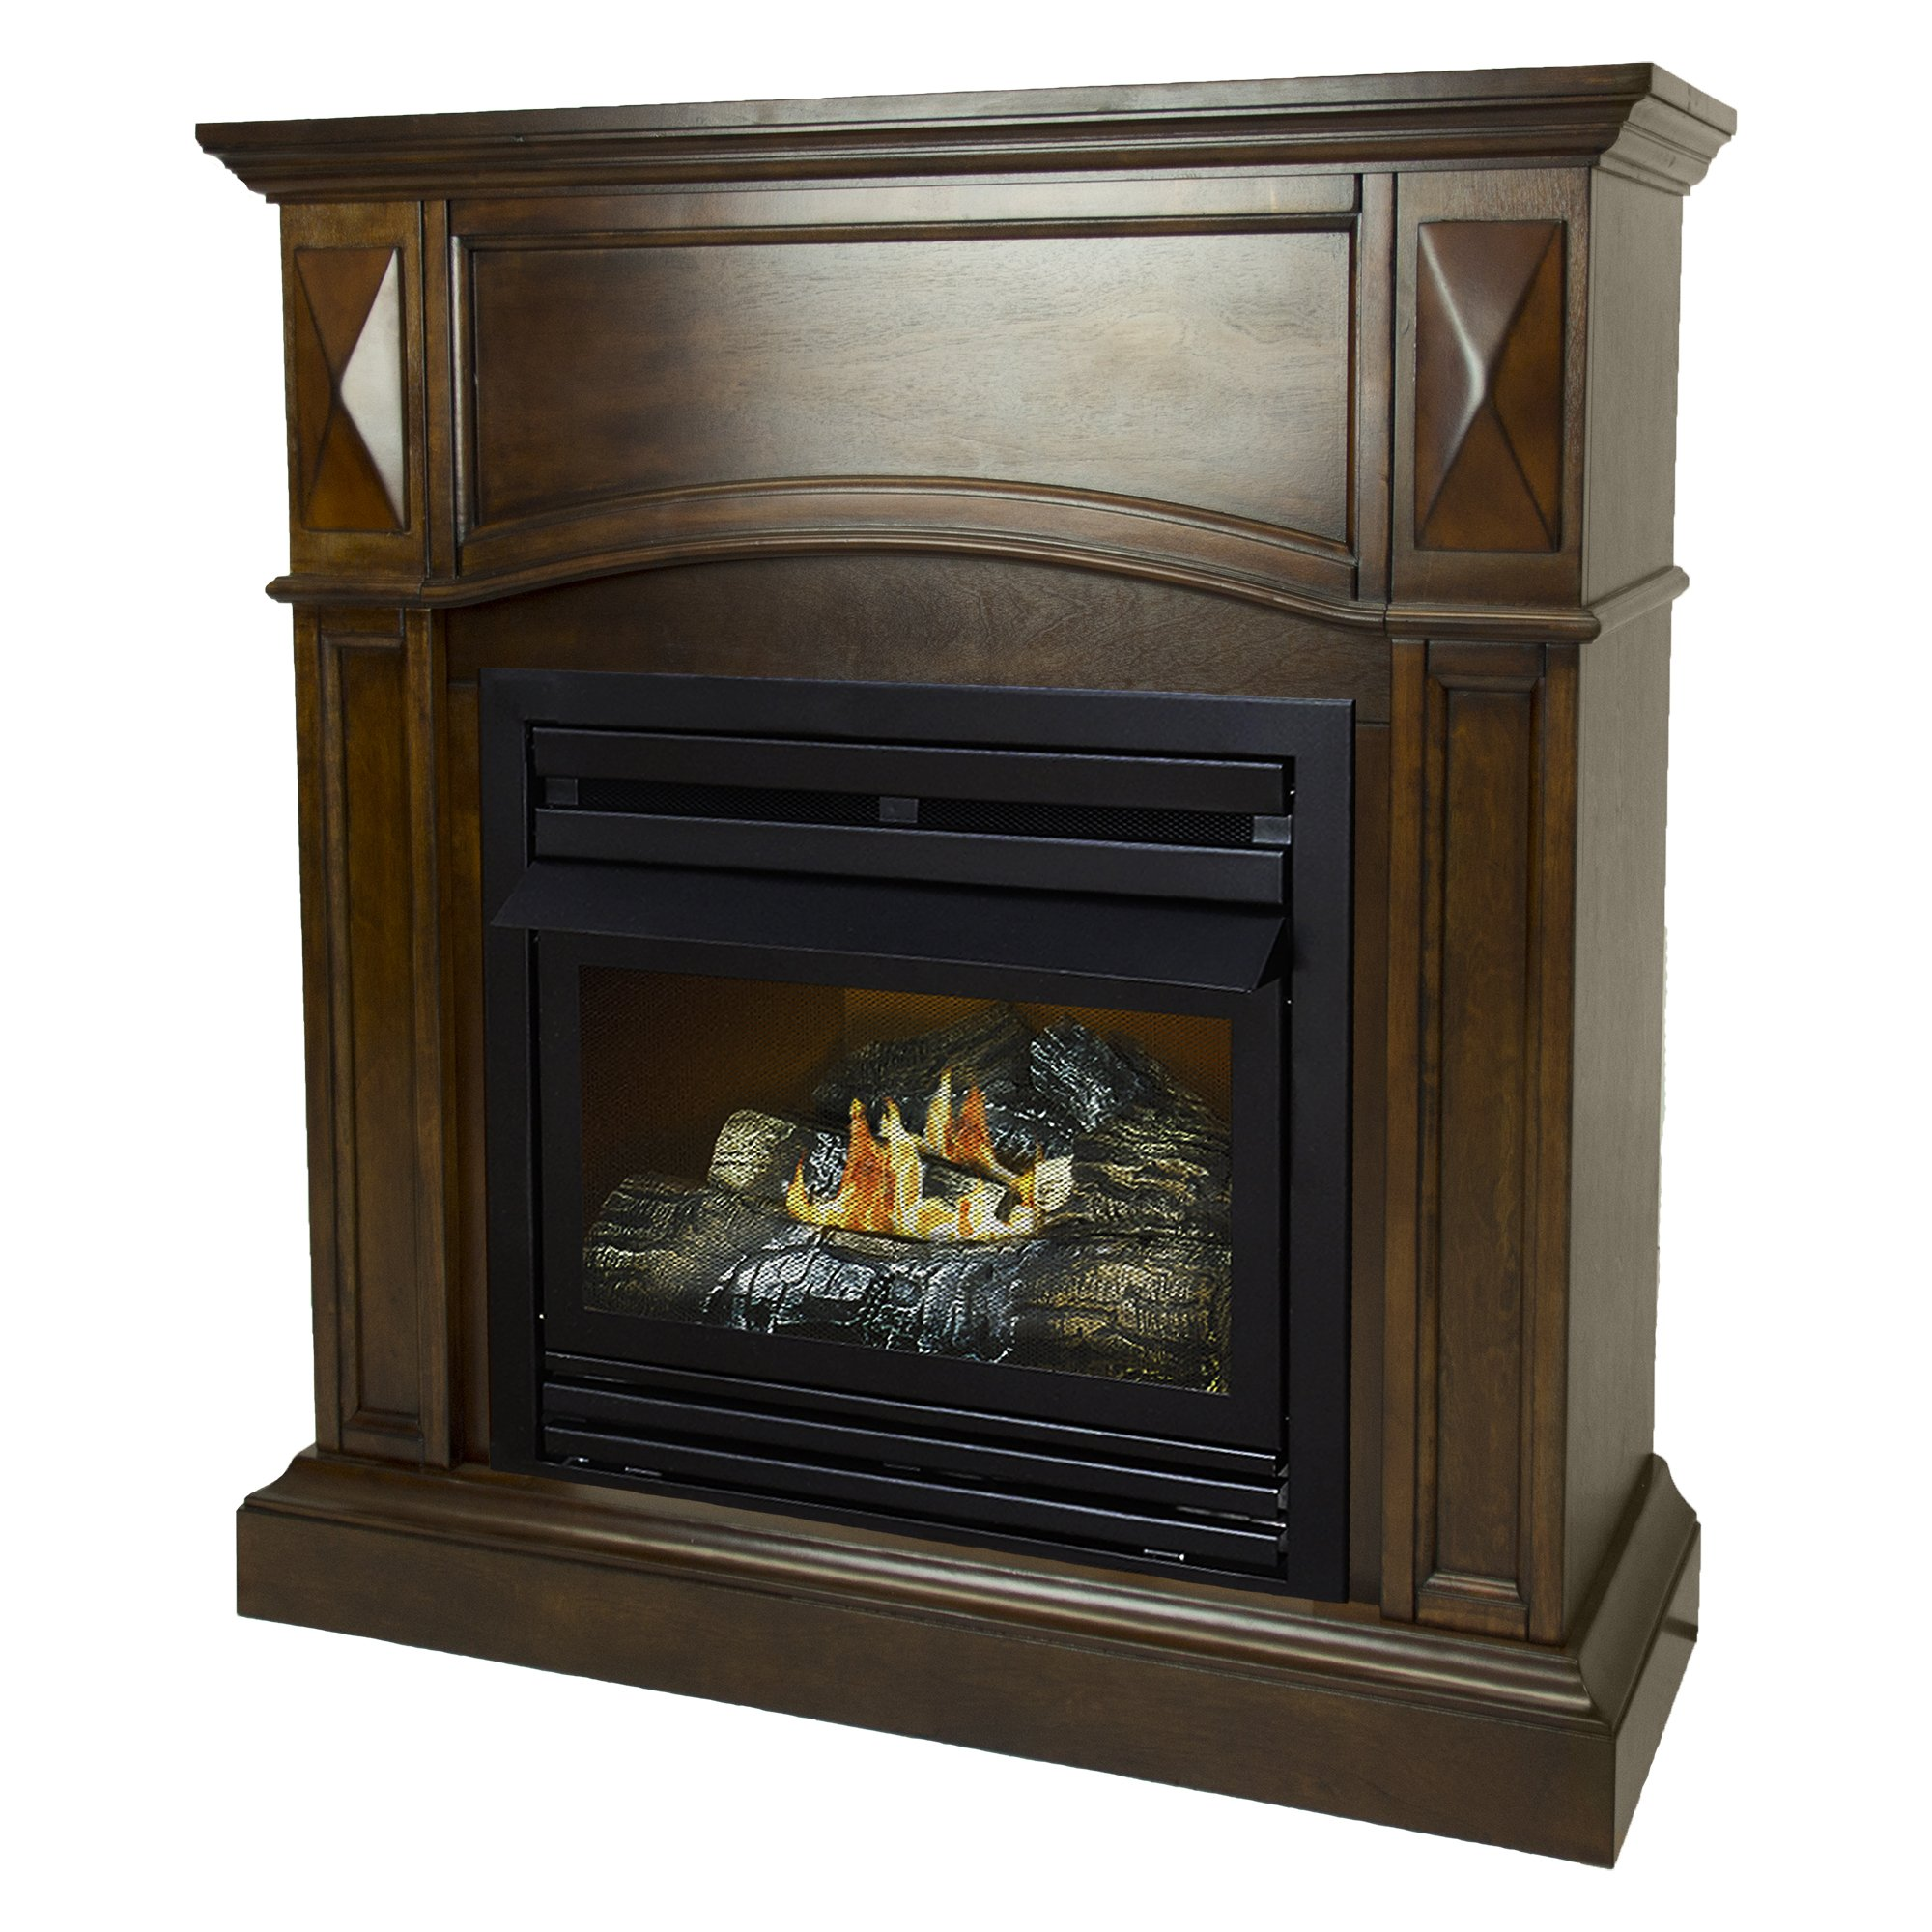 Pleasant Hearth 36 Compact Natural Gas Vent Free Fireplace System 20,000 BTU, Rich Cherry by Pleasant Hearth